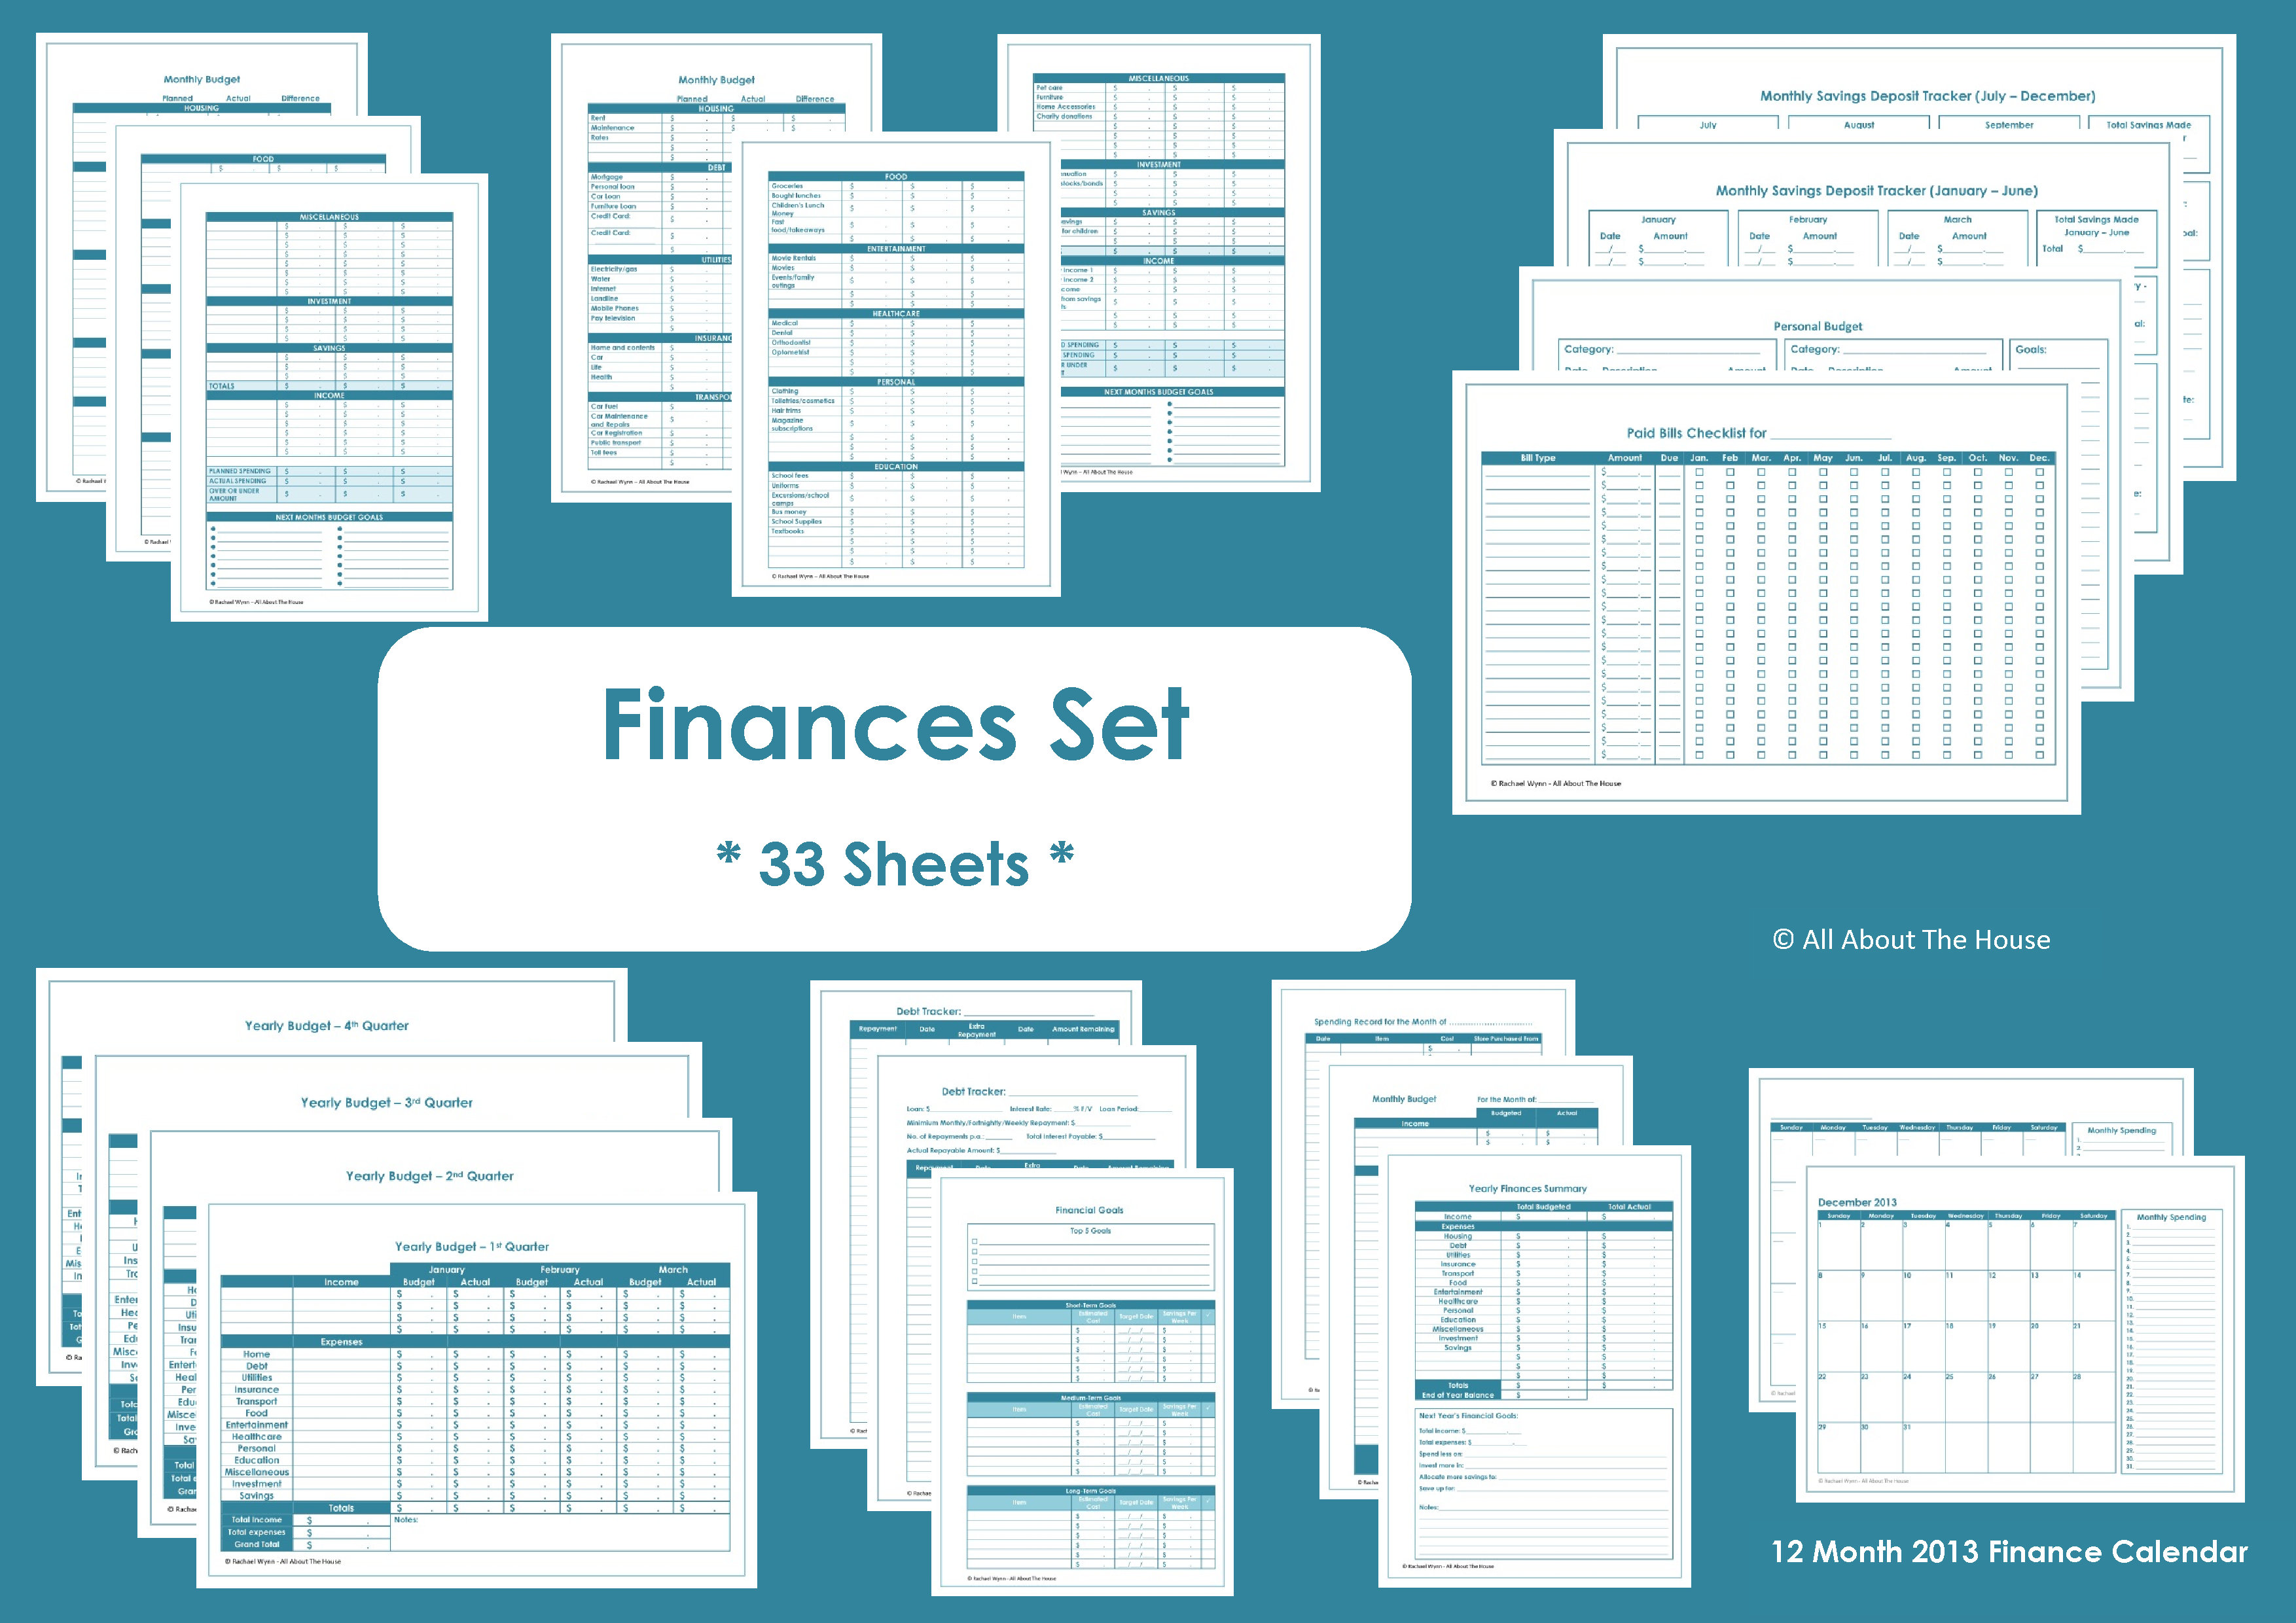 finances-listing-image-blue1.jpg